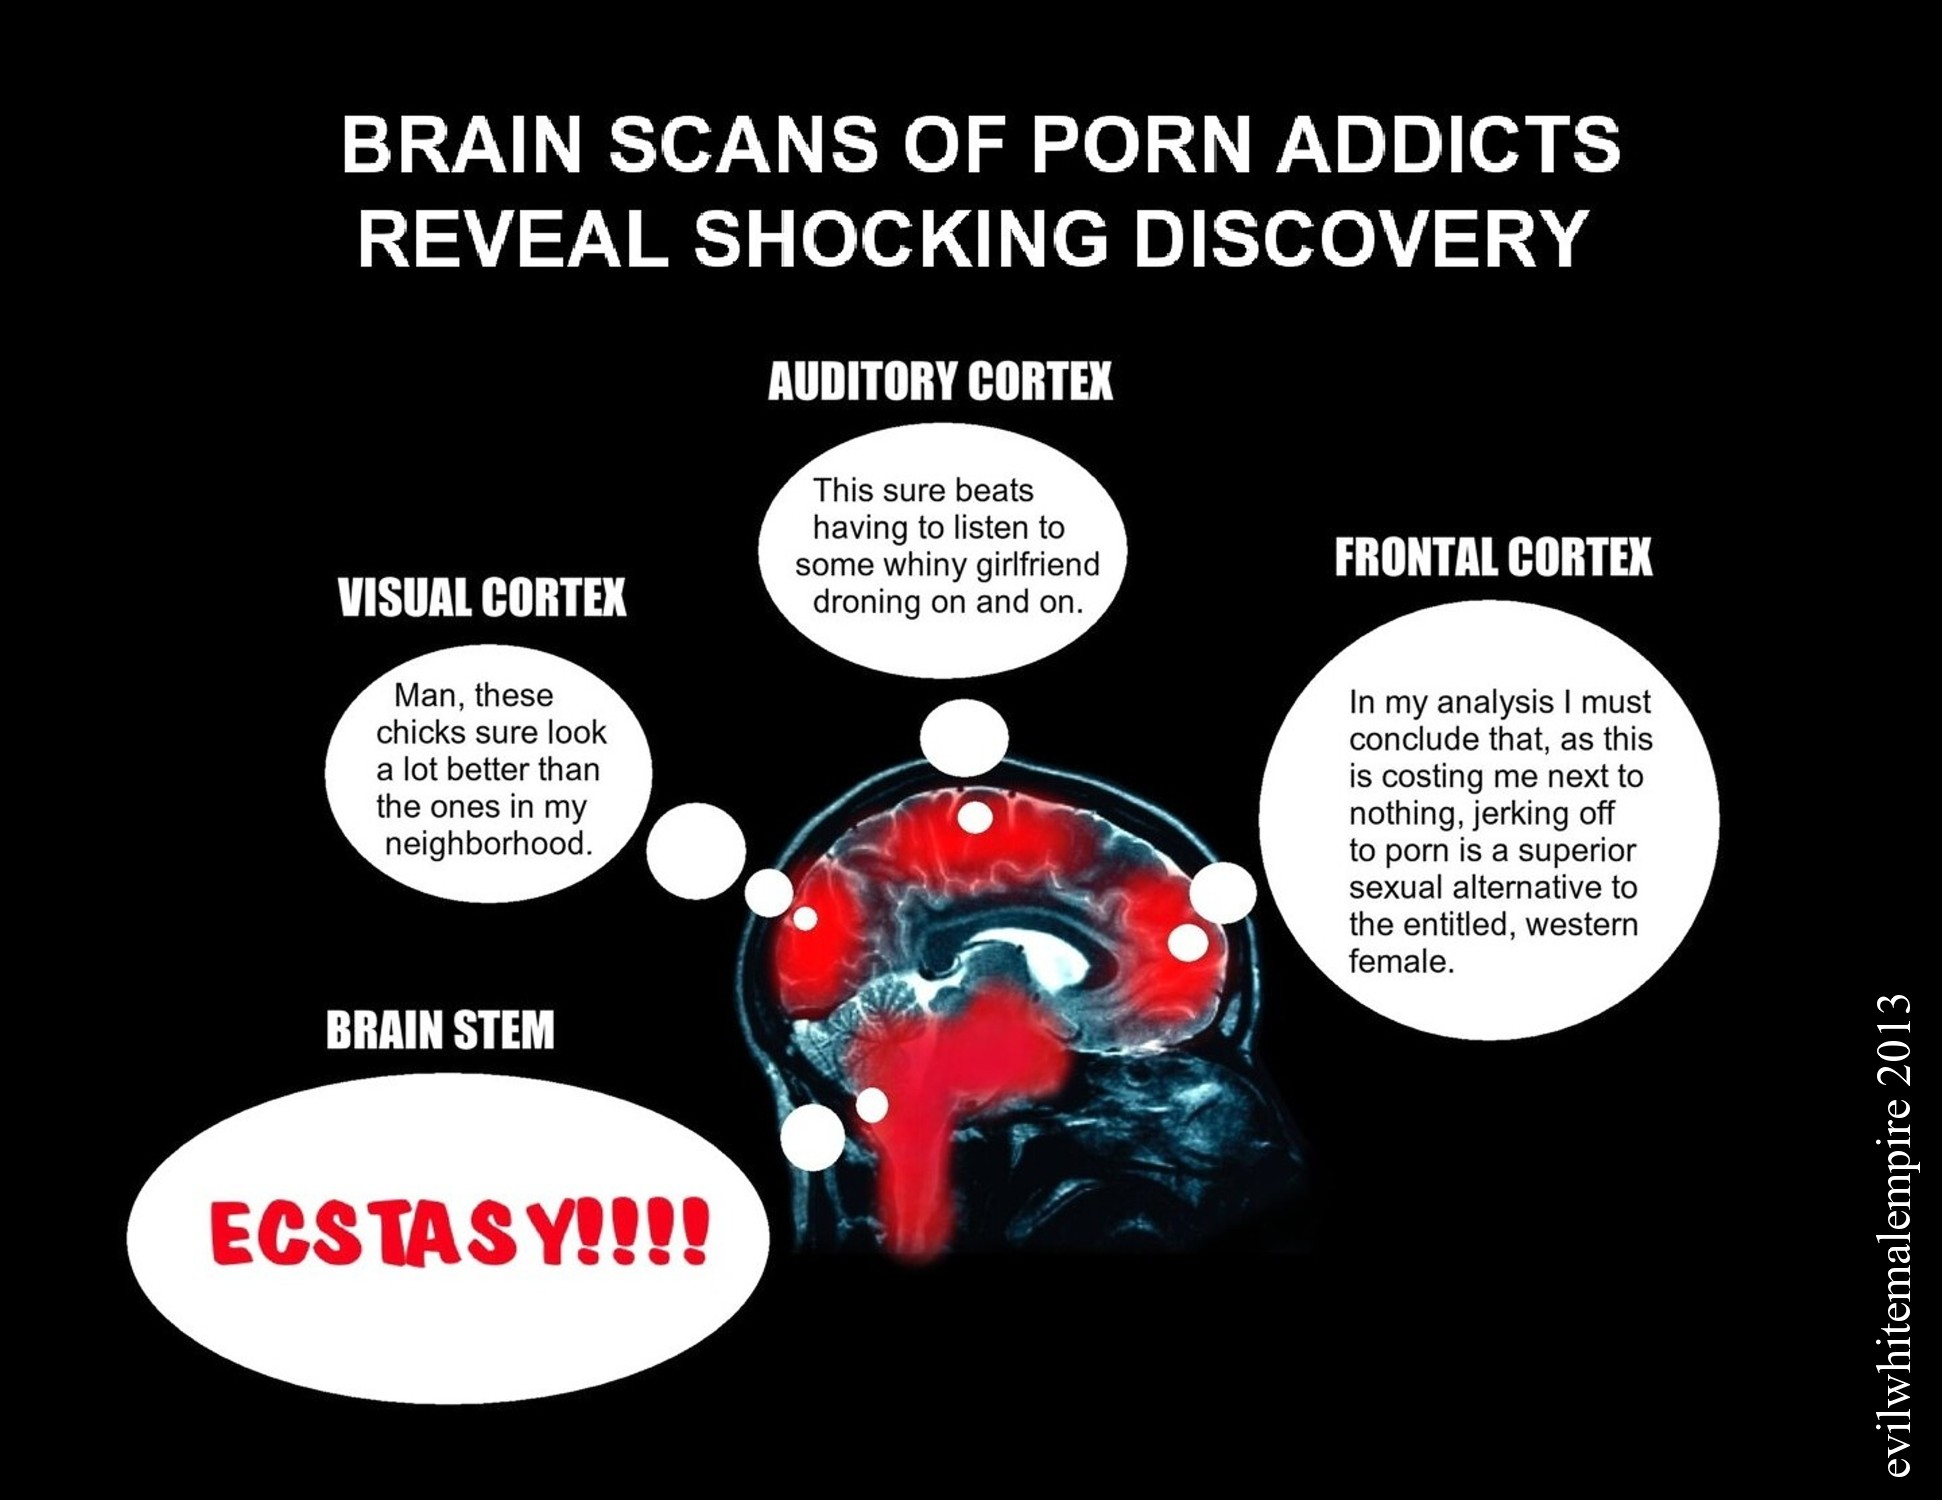 Sorry, biological effects of porn addiction